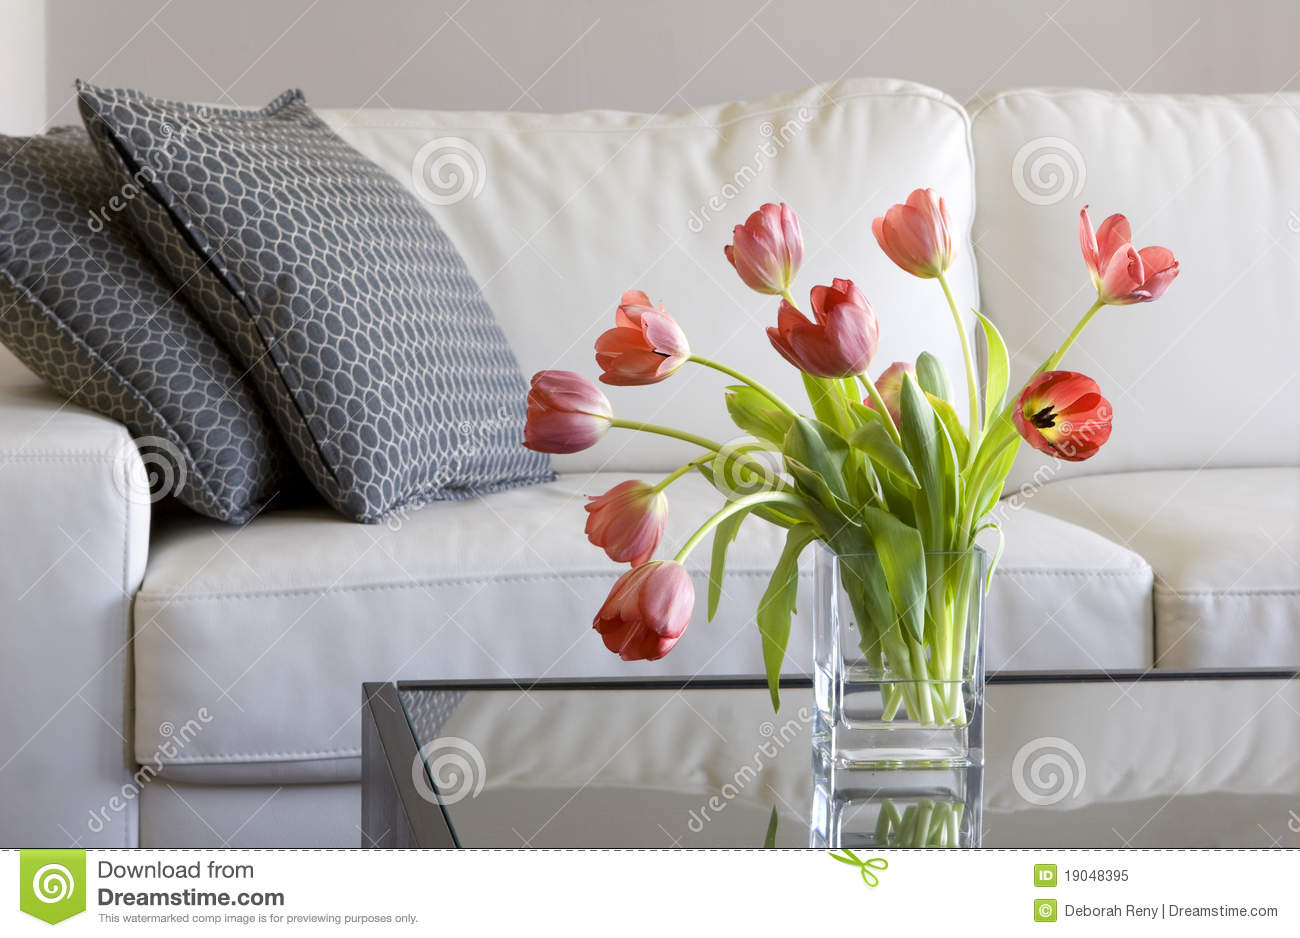 red tulips in modern living room home decor royalty free stock photo - Home Decor Photos Free